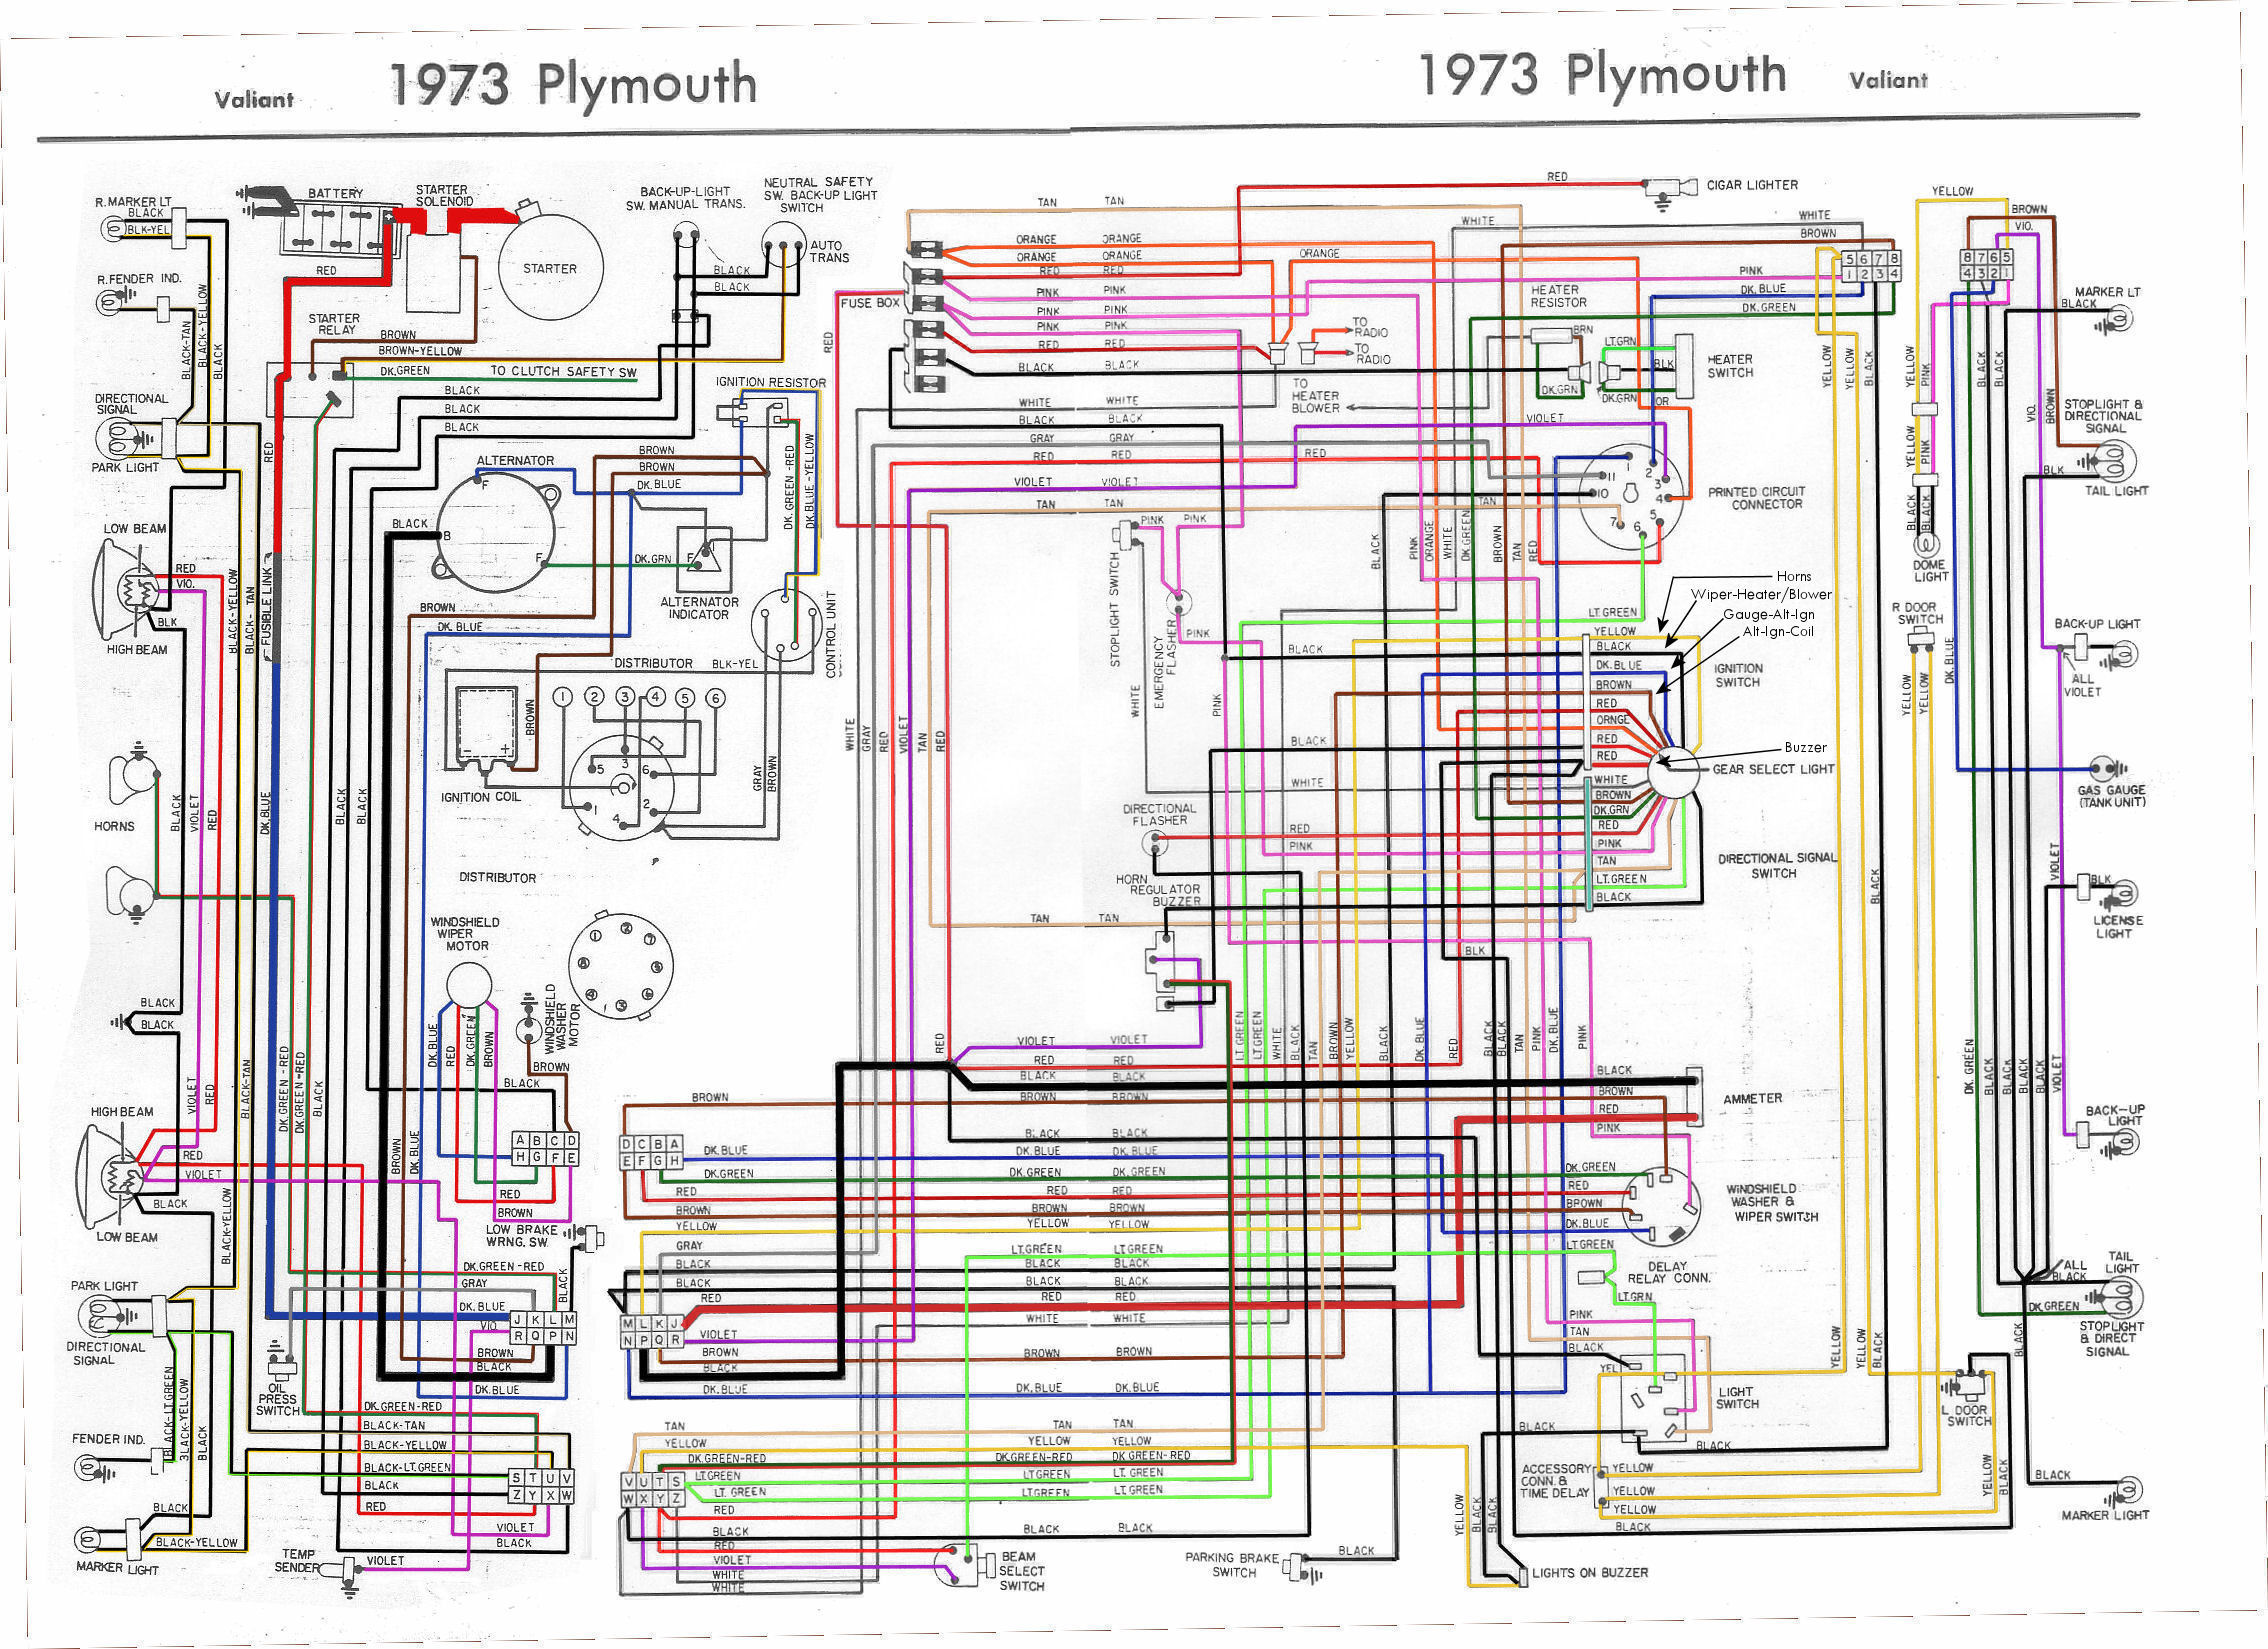 74 plymouth wiring diagram wiring diagram1973 plymouth valiant engine diagram